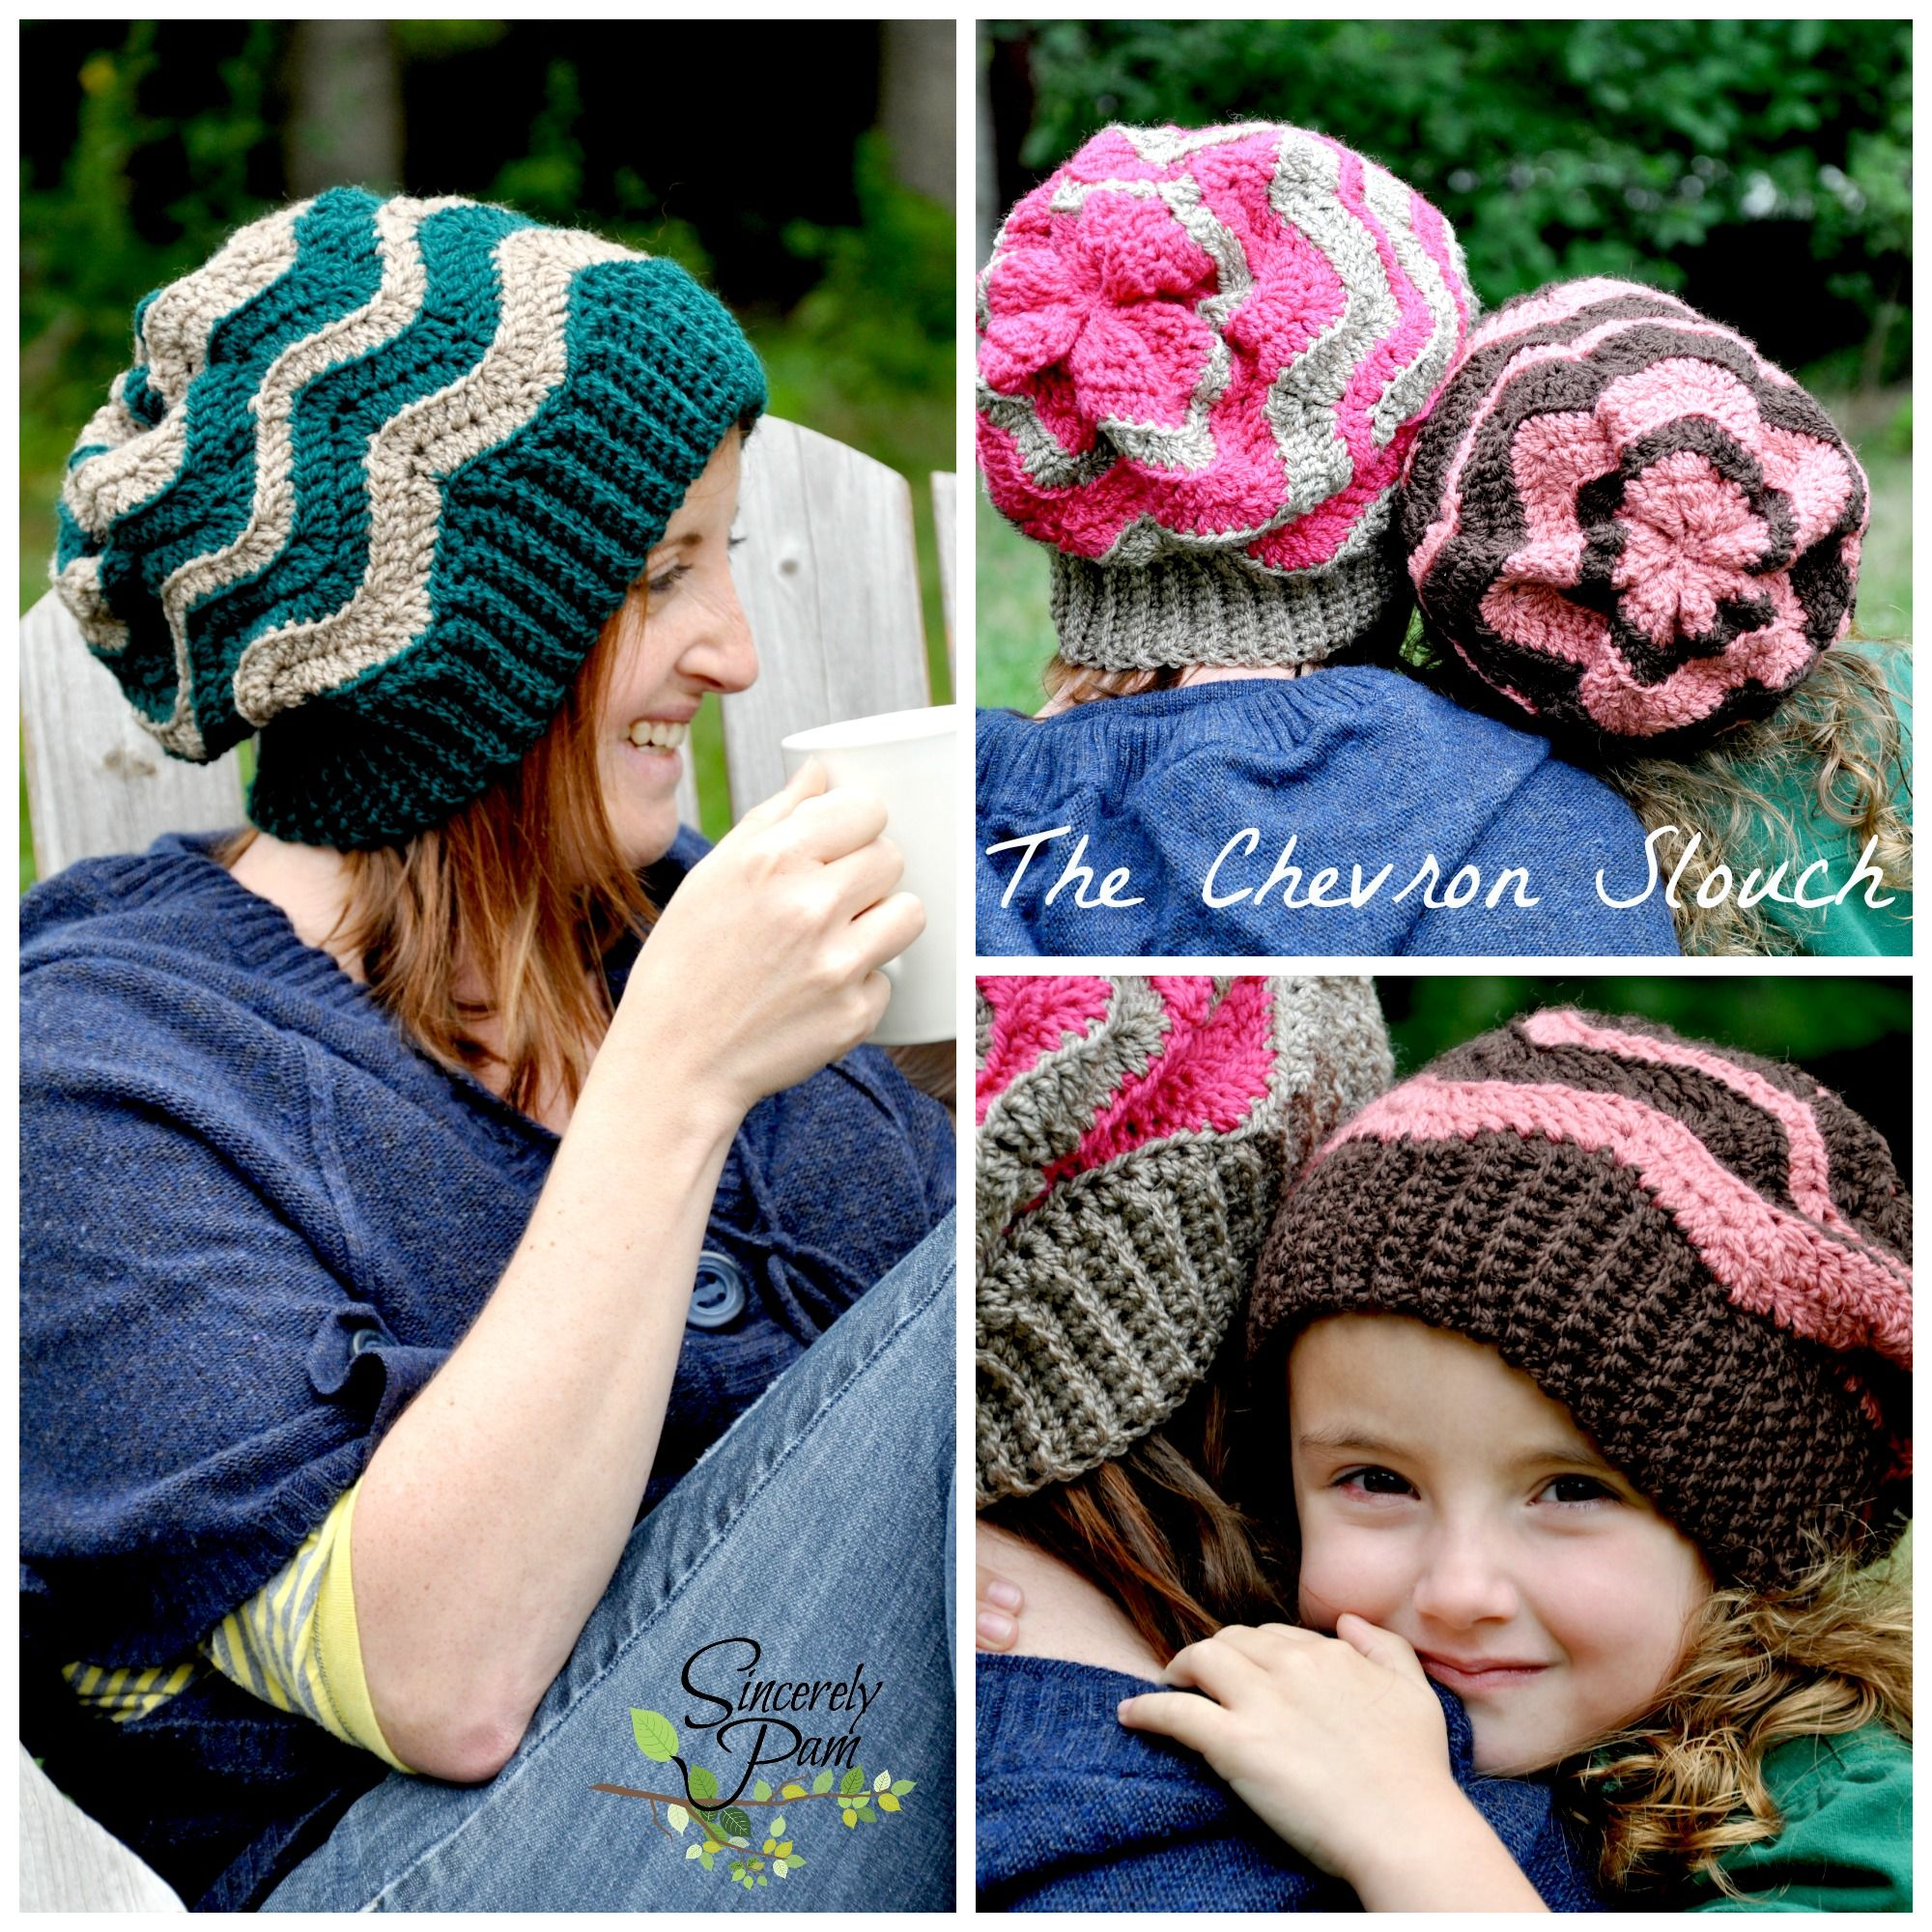 Chevron Slouch Pattern by Sincerely Pam! www.facebook.com ...